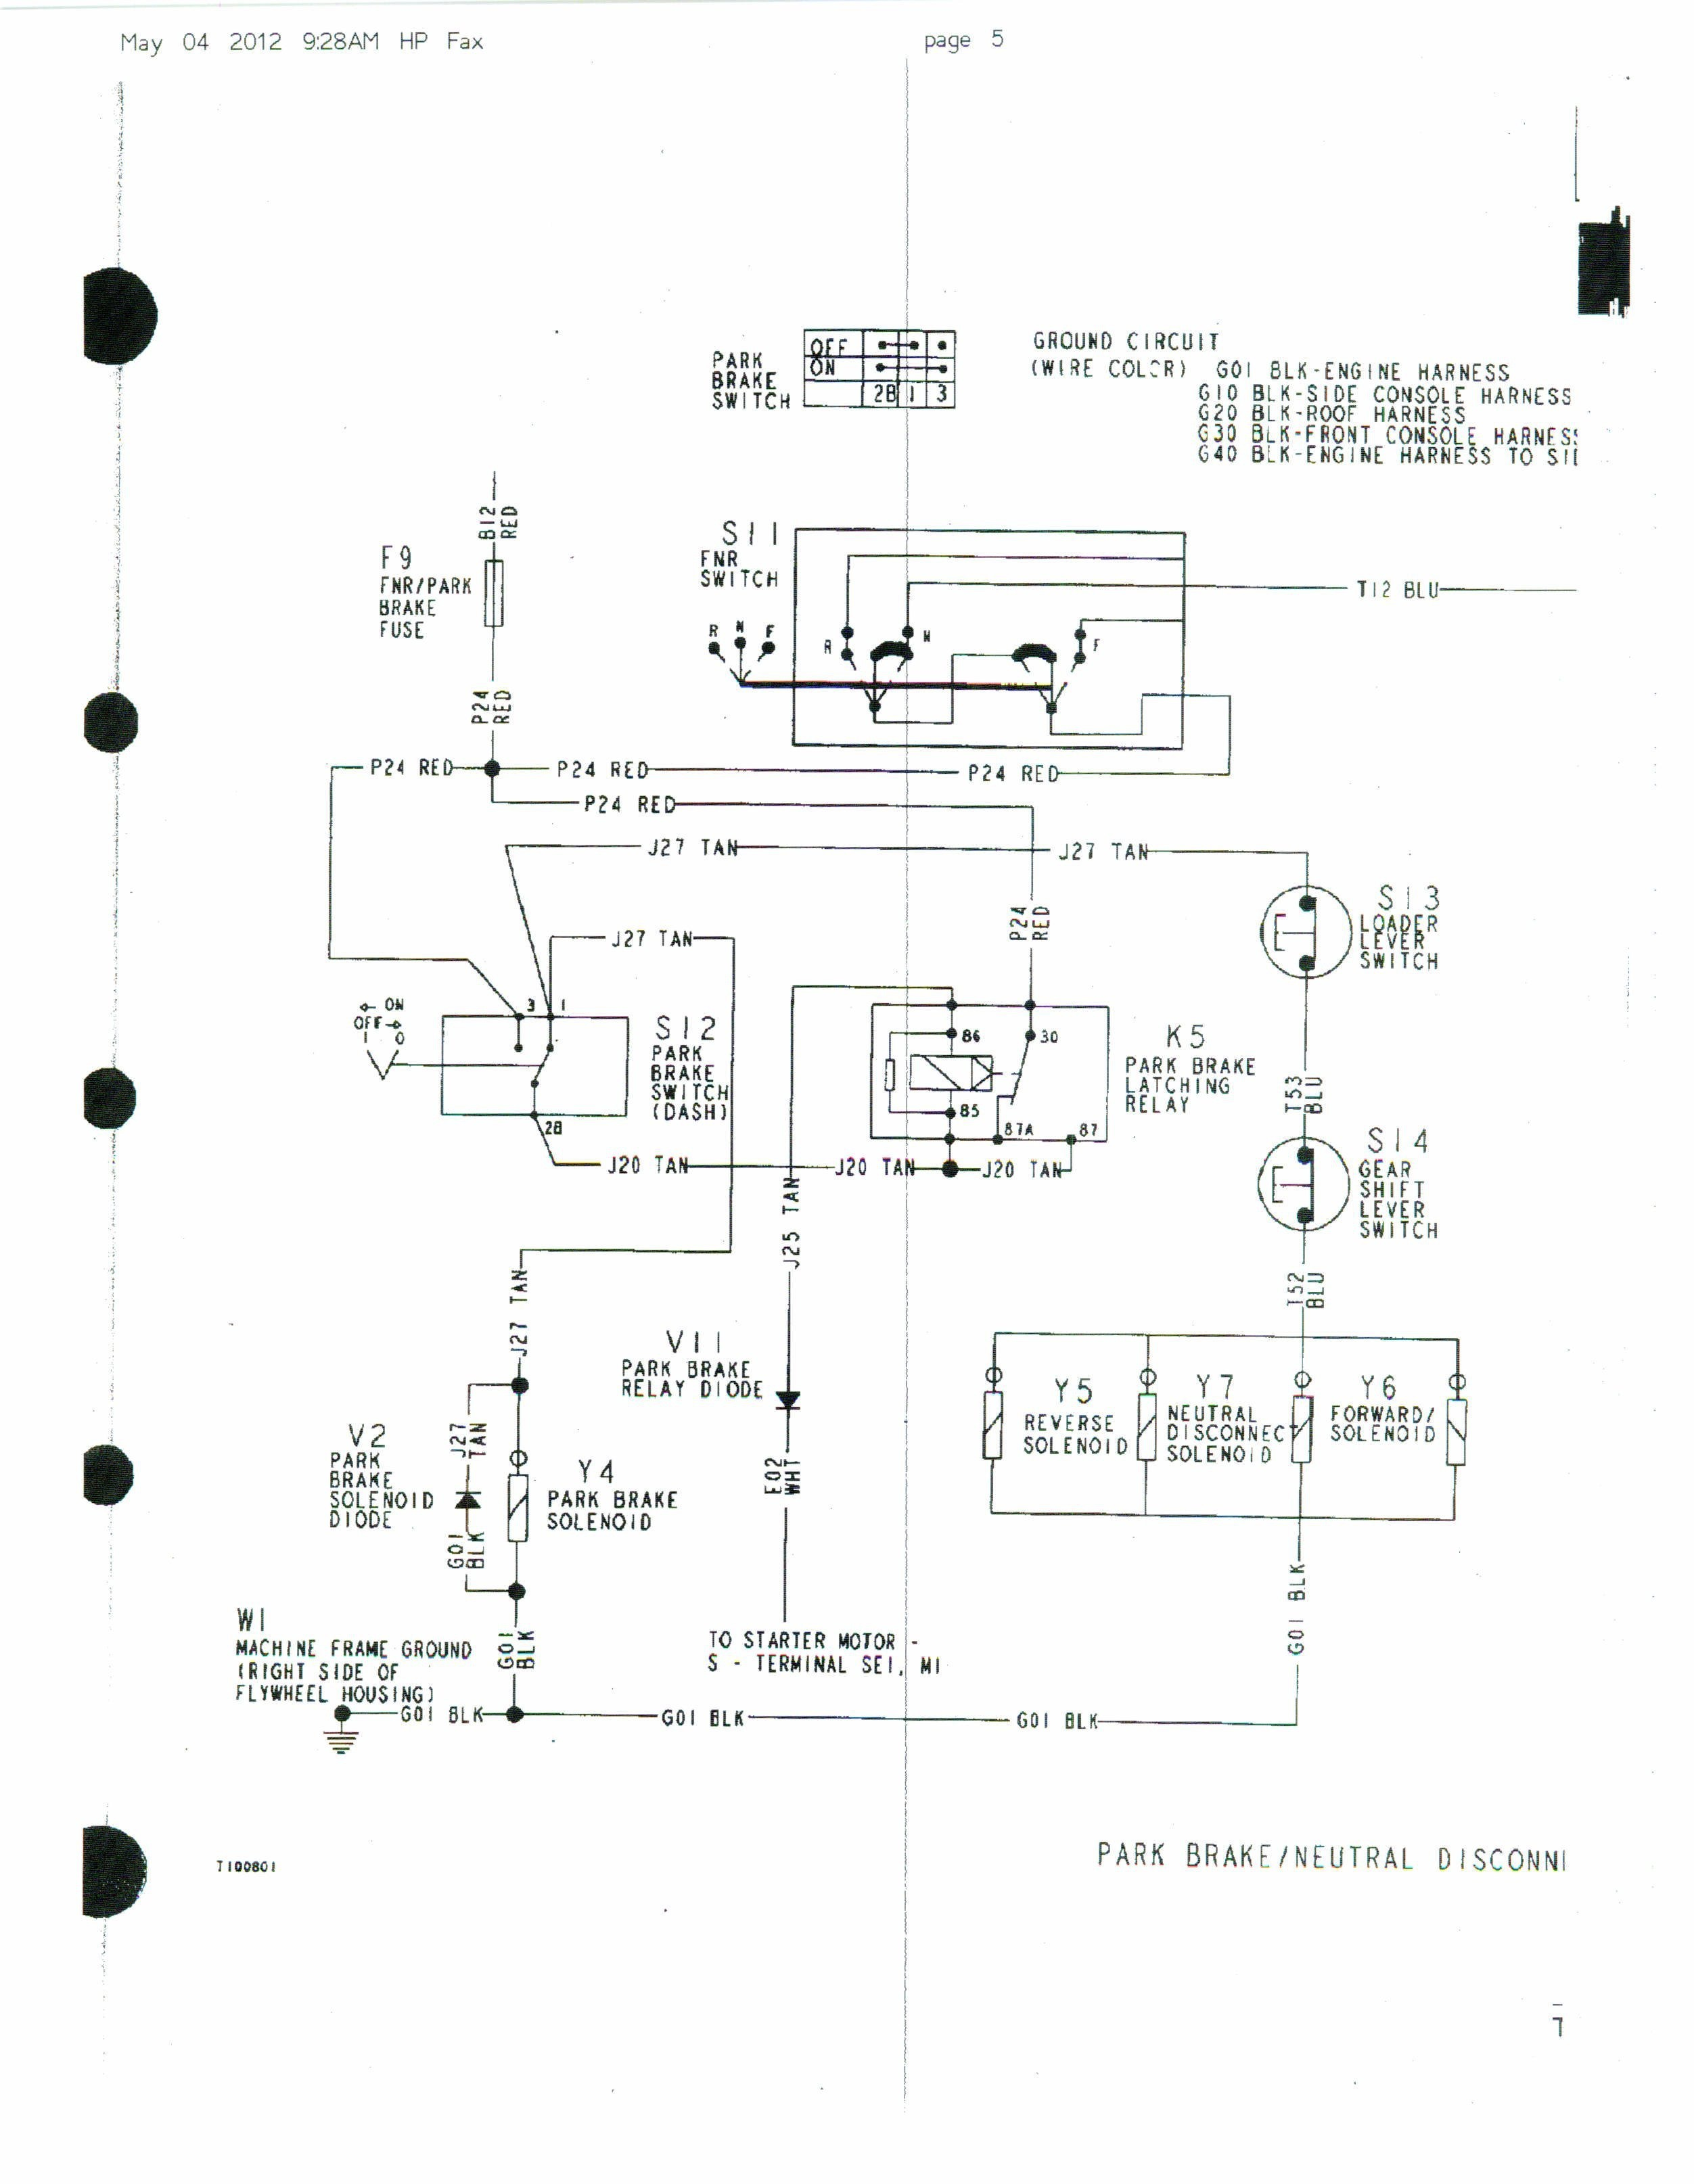 Diagram Of Braking System Emergency Brake Diagram Famous Parking Brake Switch Wiring Diagram Of Diagram Of Braking System